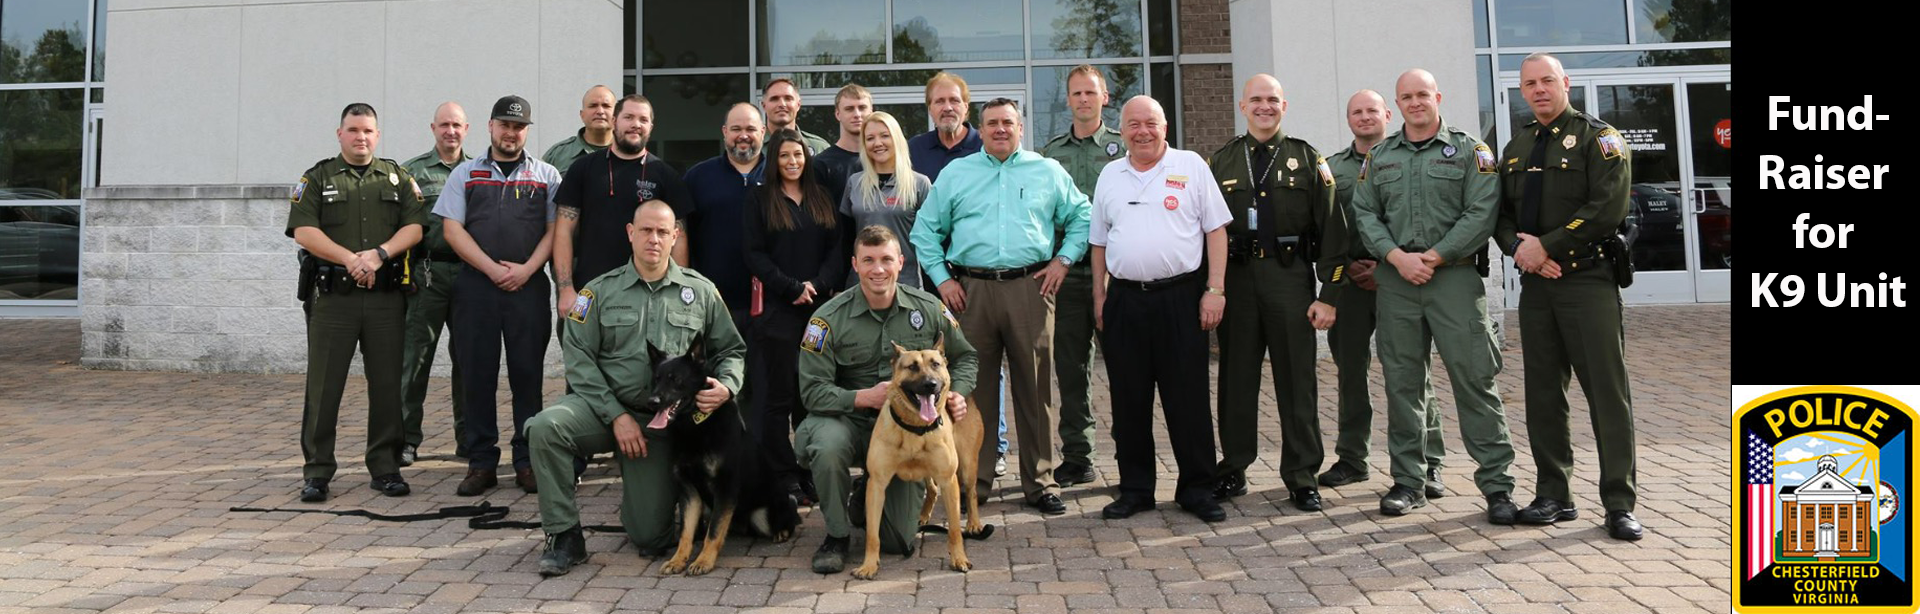 chesterfield county police k9, k9 unit, haley toyota